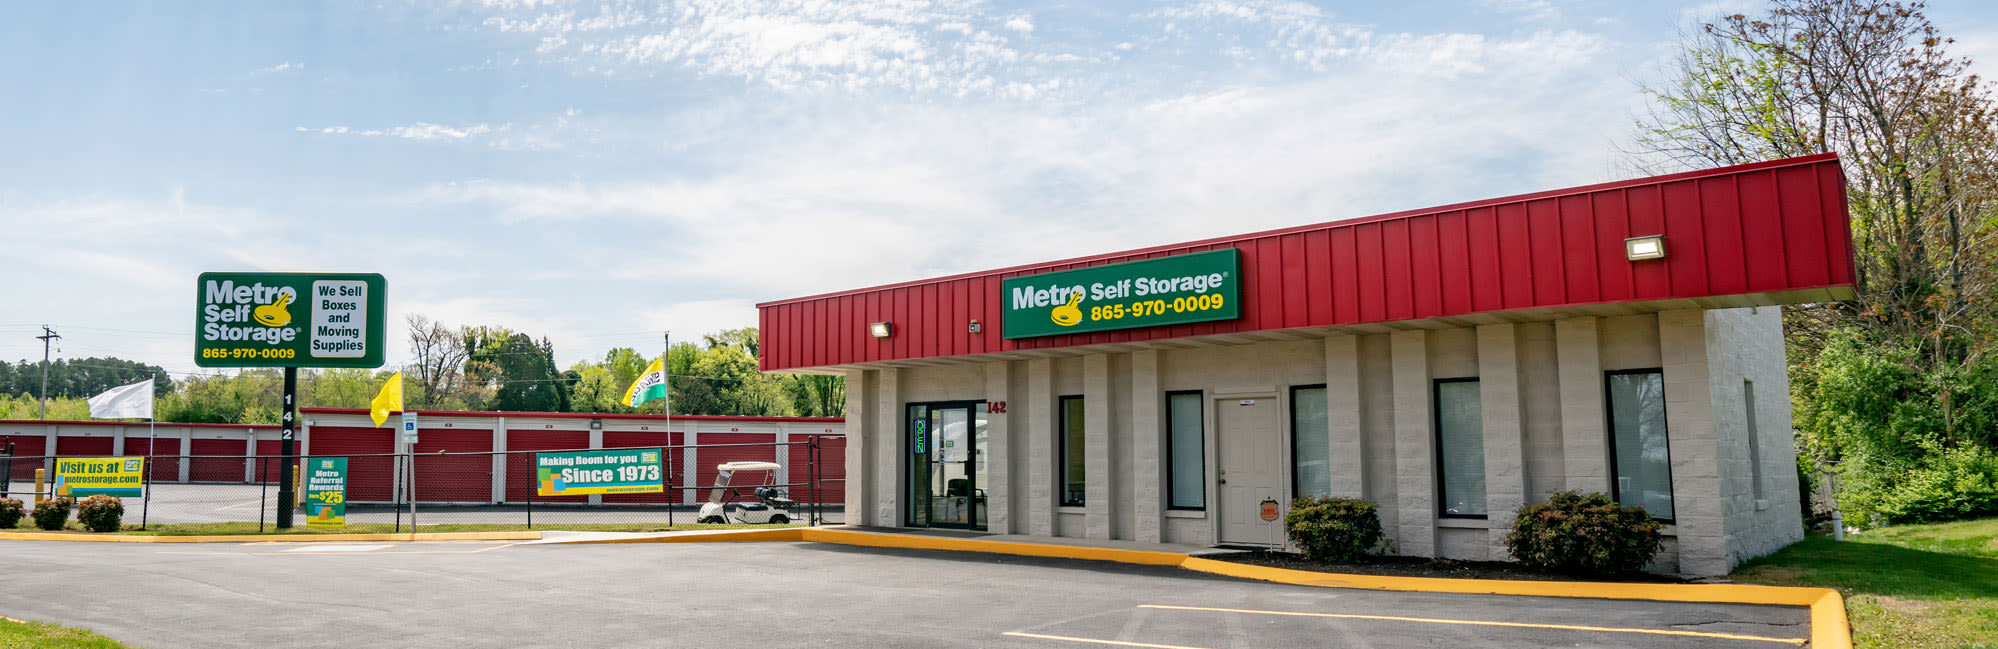 Metro Self Storage in Alcoa, TN